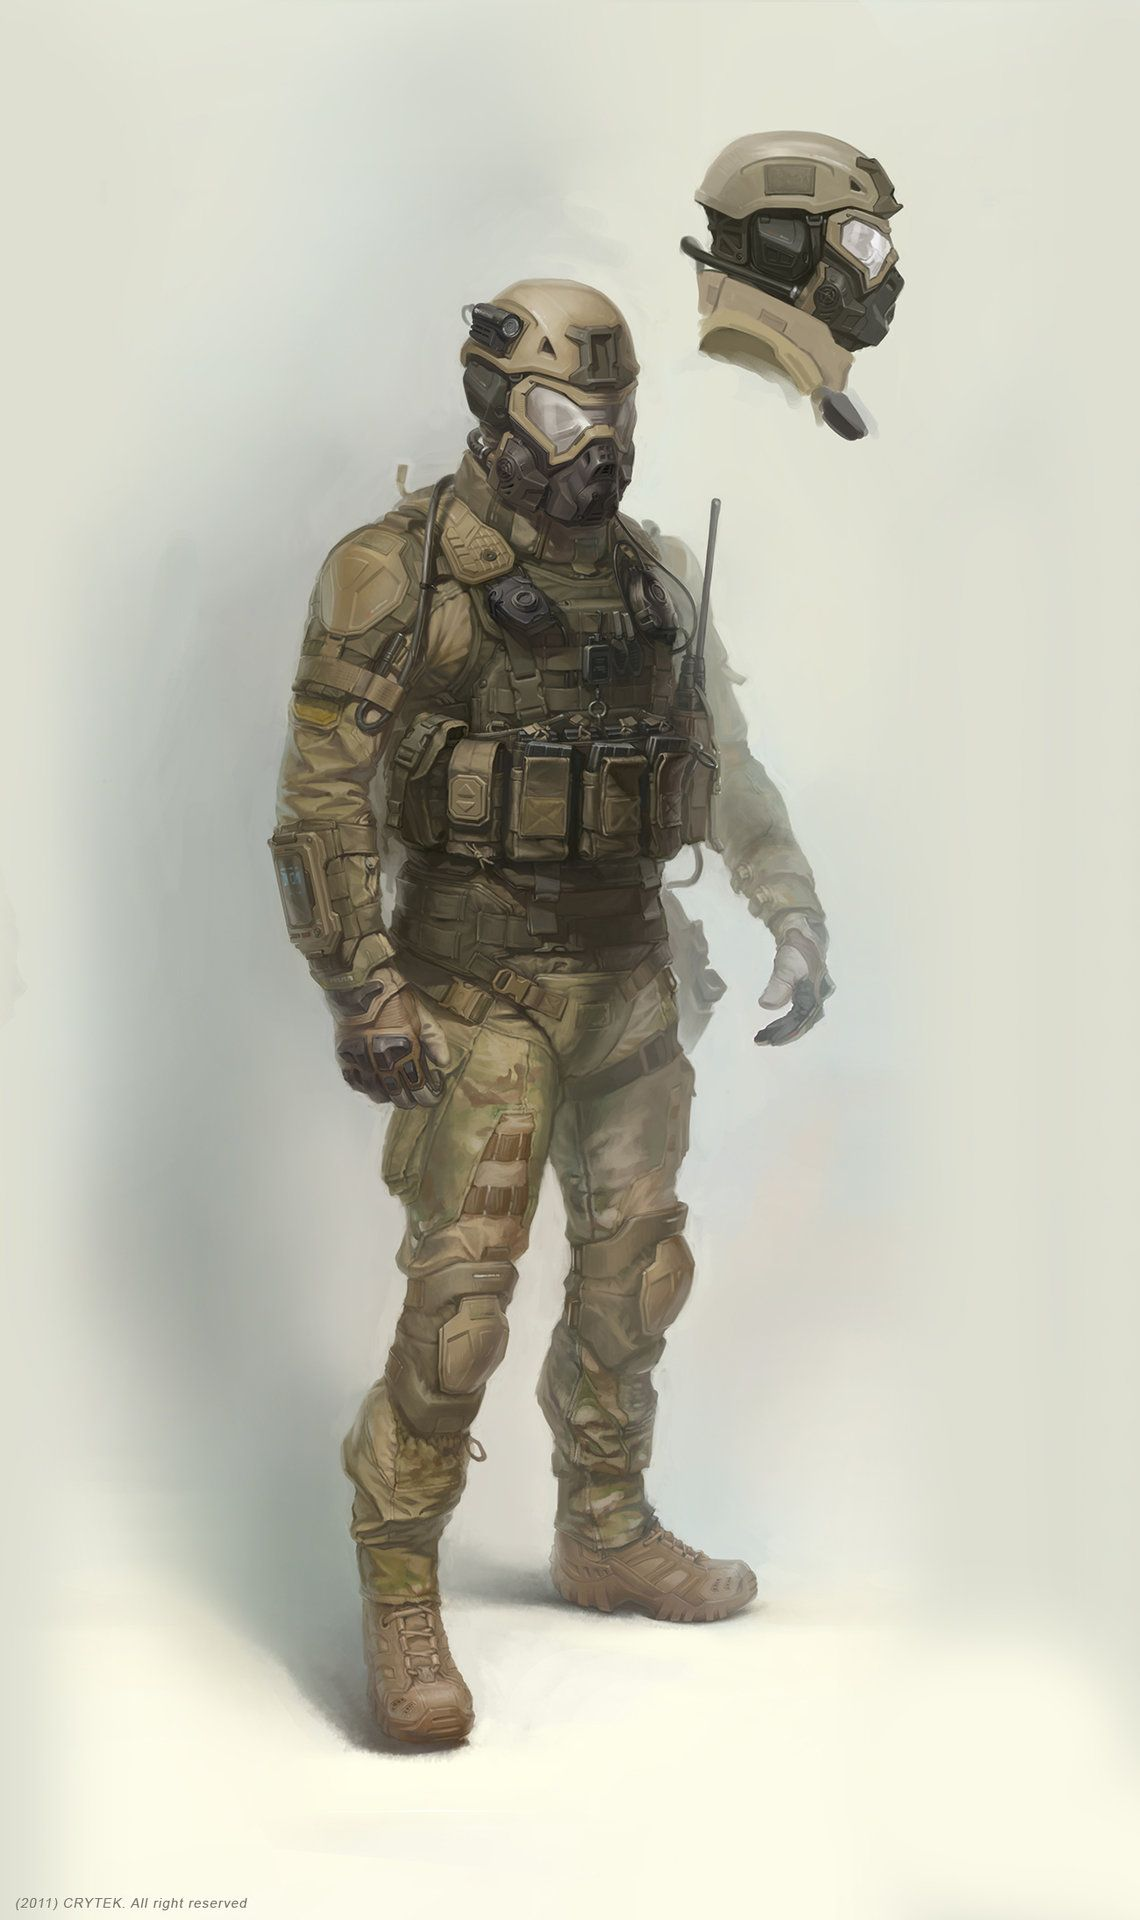 ArtStation - my concept art for crytek (us future soldier ...